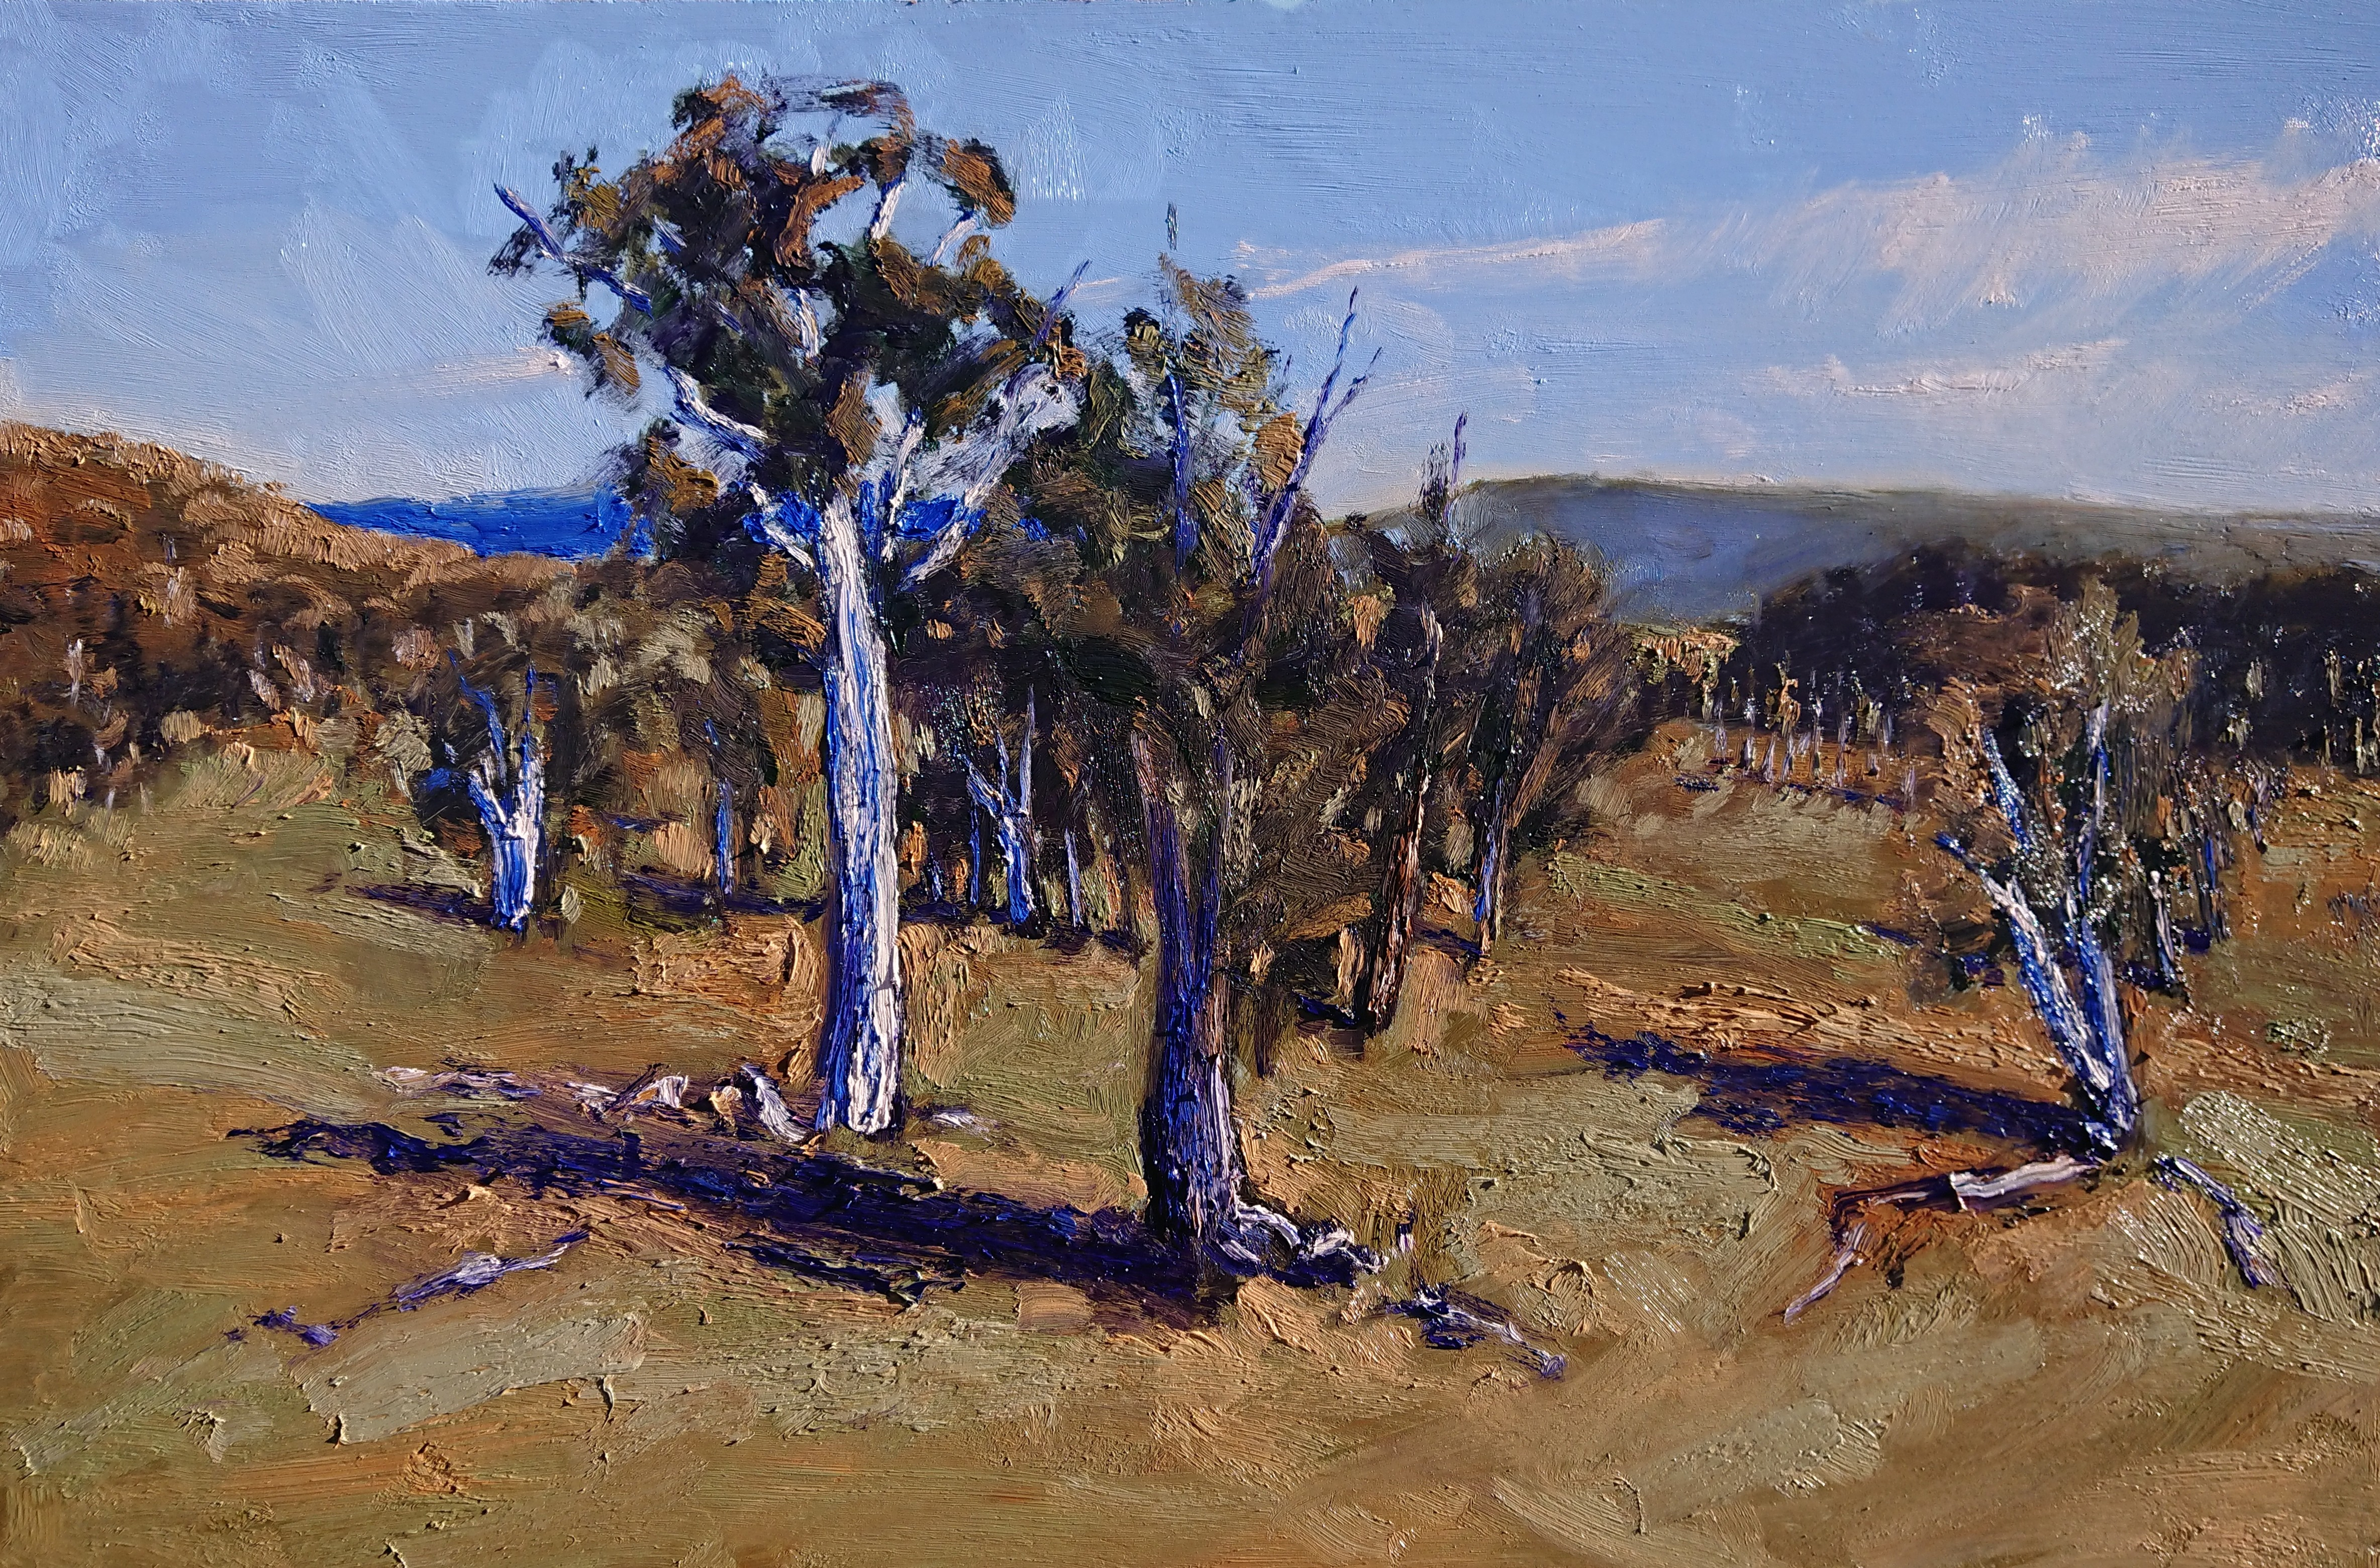 Slight breeze on a crisp winter's day_60 x 90 cm, oil on board